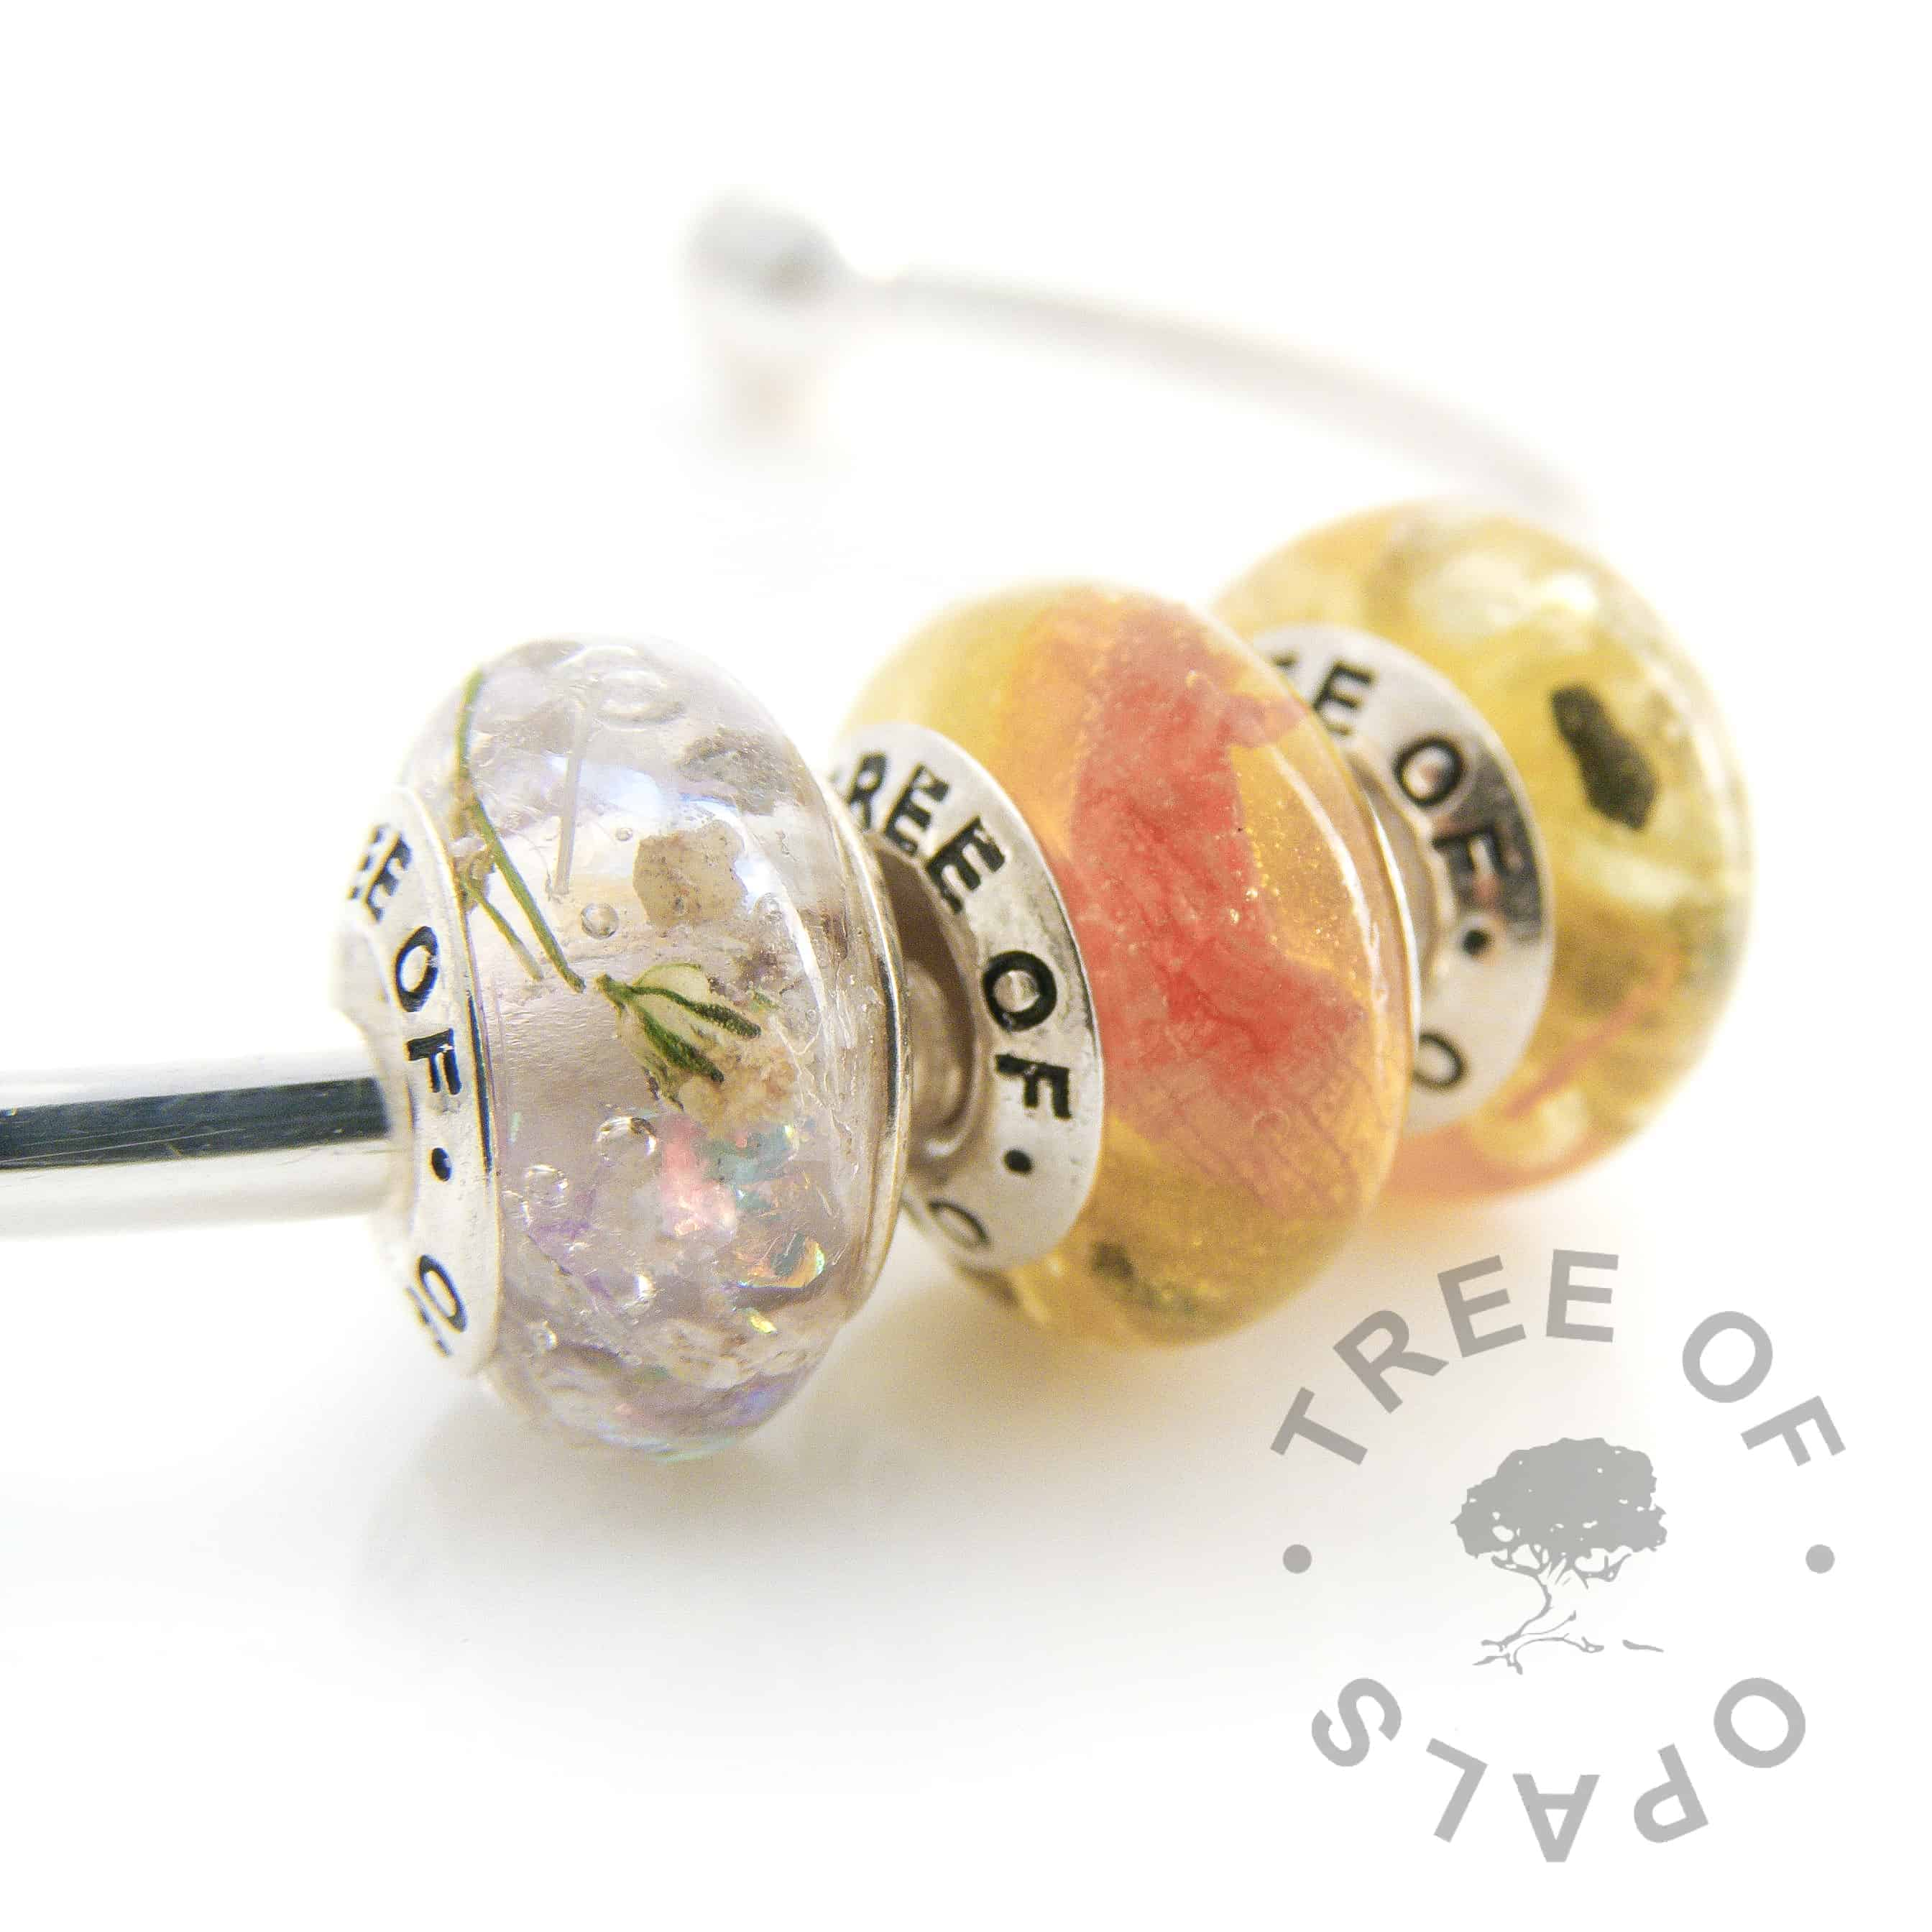 cremation ashes and flower charm trio with purple opalescent flakes, gypsophelia and sapphire September birthstone with cremation ash, and a yellow shimmer powder charm with daffodil petals, sapphire September birthstone with cremation ash x2. Solid sterling silver signature Tree of Opals core